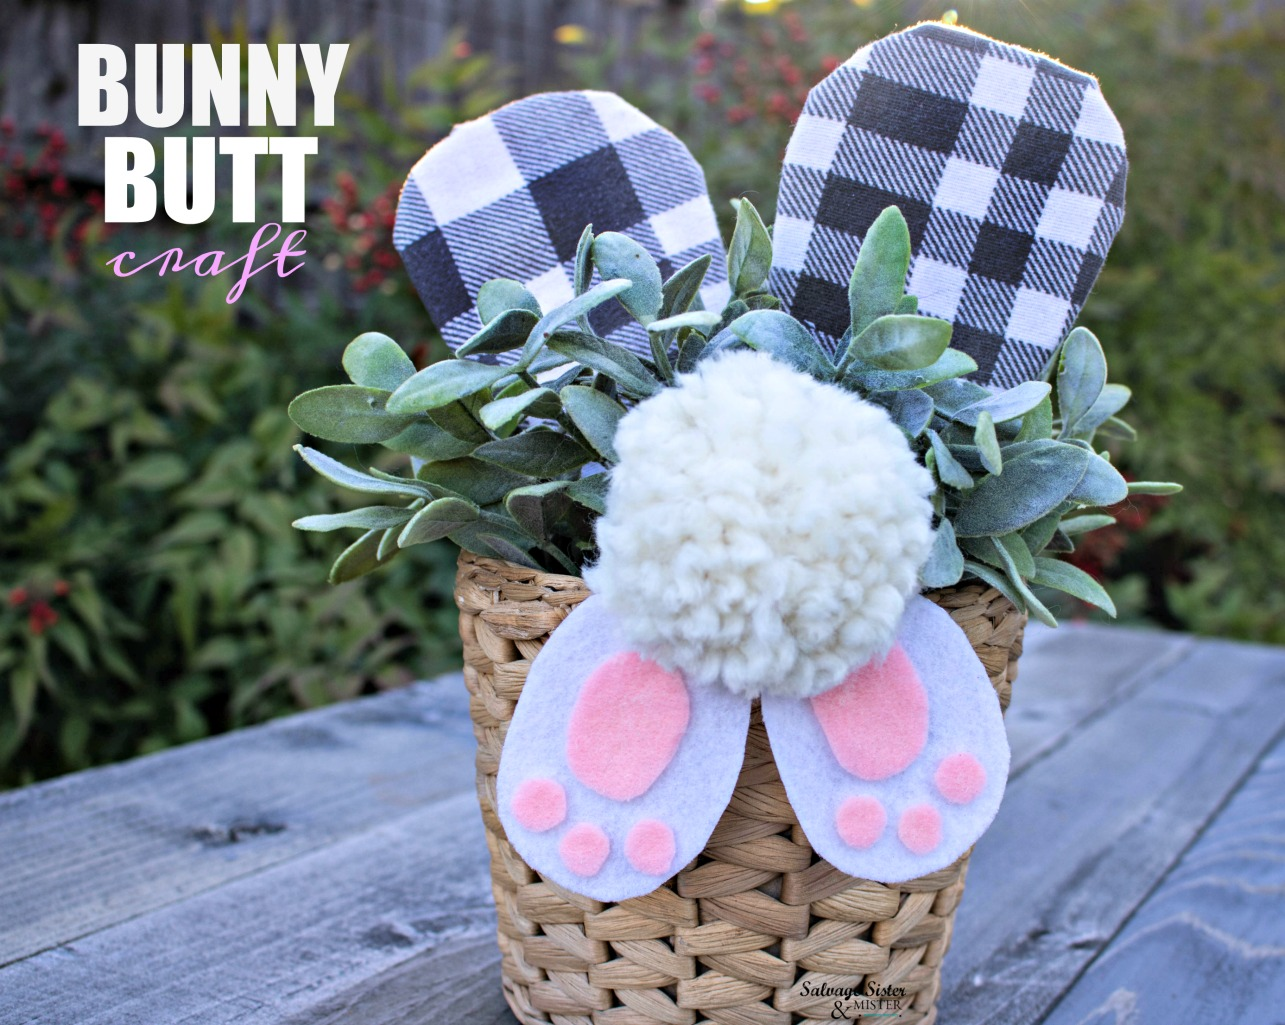 A removable bunny butt craft decoration. Add it to a plant, an Easter basket, a tin, etc. This decoration was used with craft supplies I already had on hand. easy to make for kids as well. Easy to store away and use next spring. Customize it to your style. this one was done a little farmhouse with buffalo check for the ears. Get the full tutorial on salvagesisterandmister.com